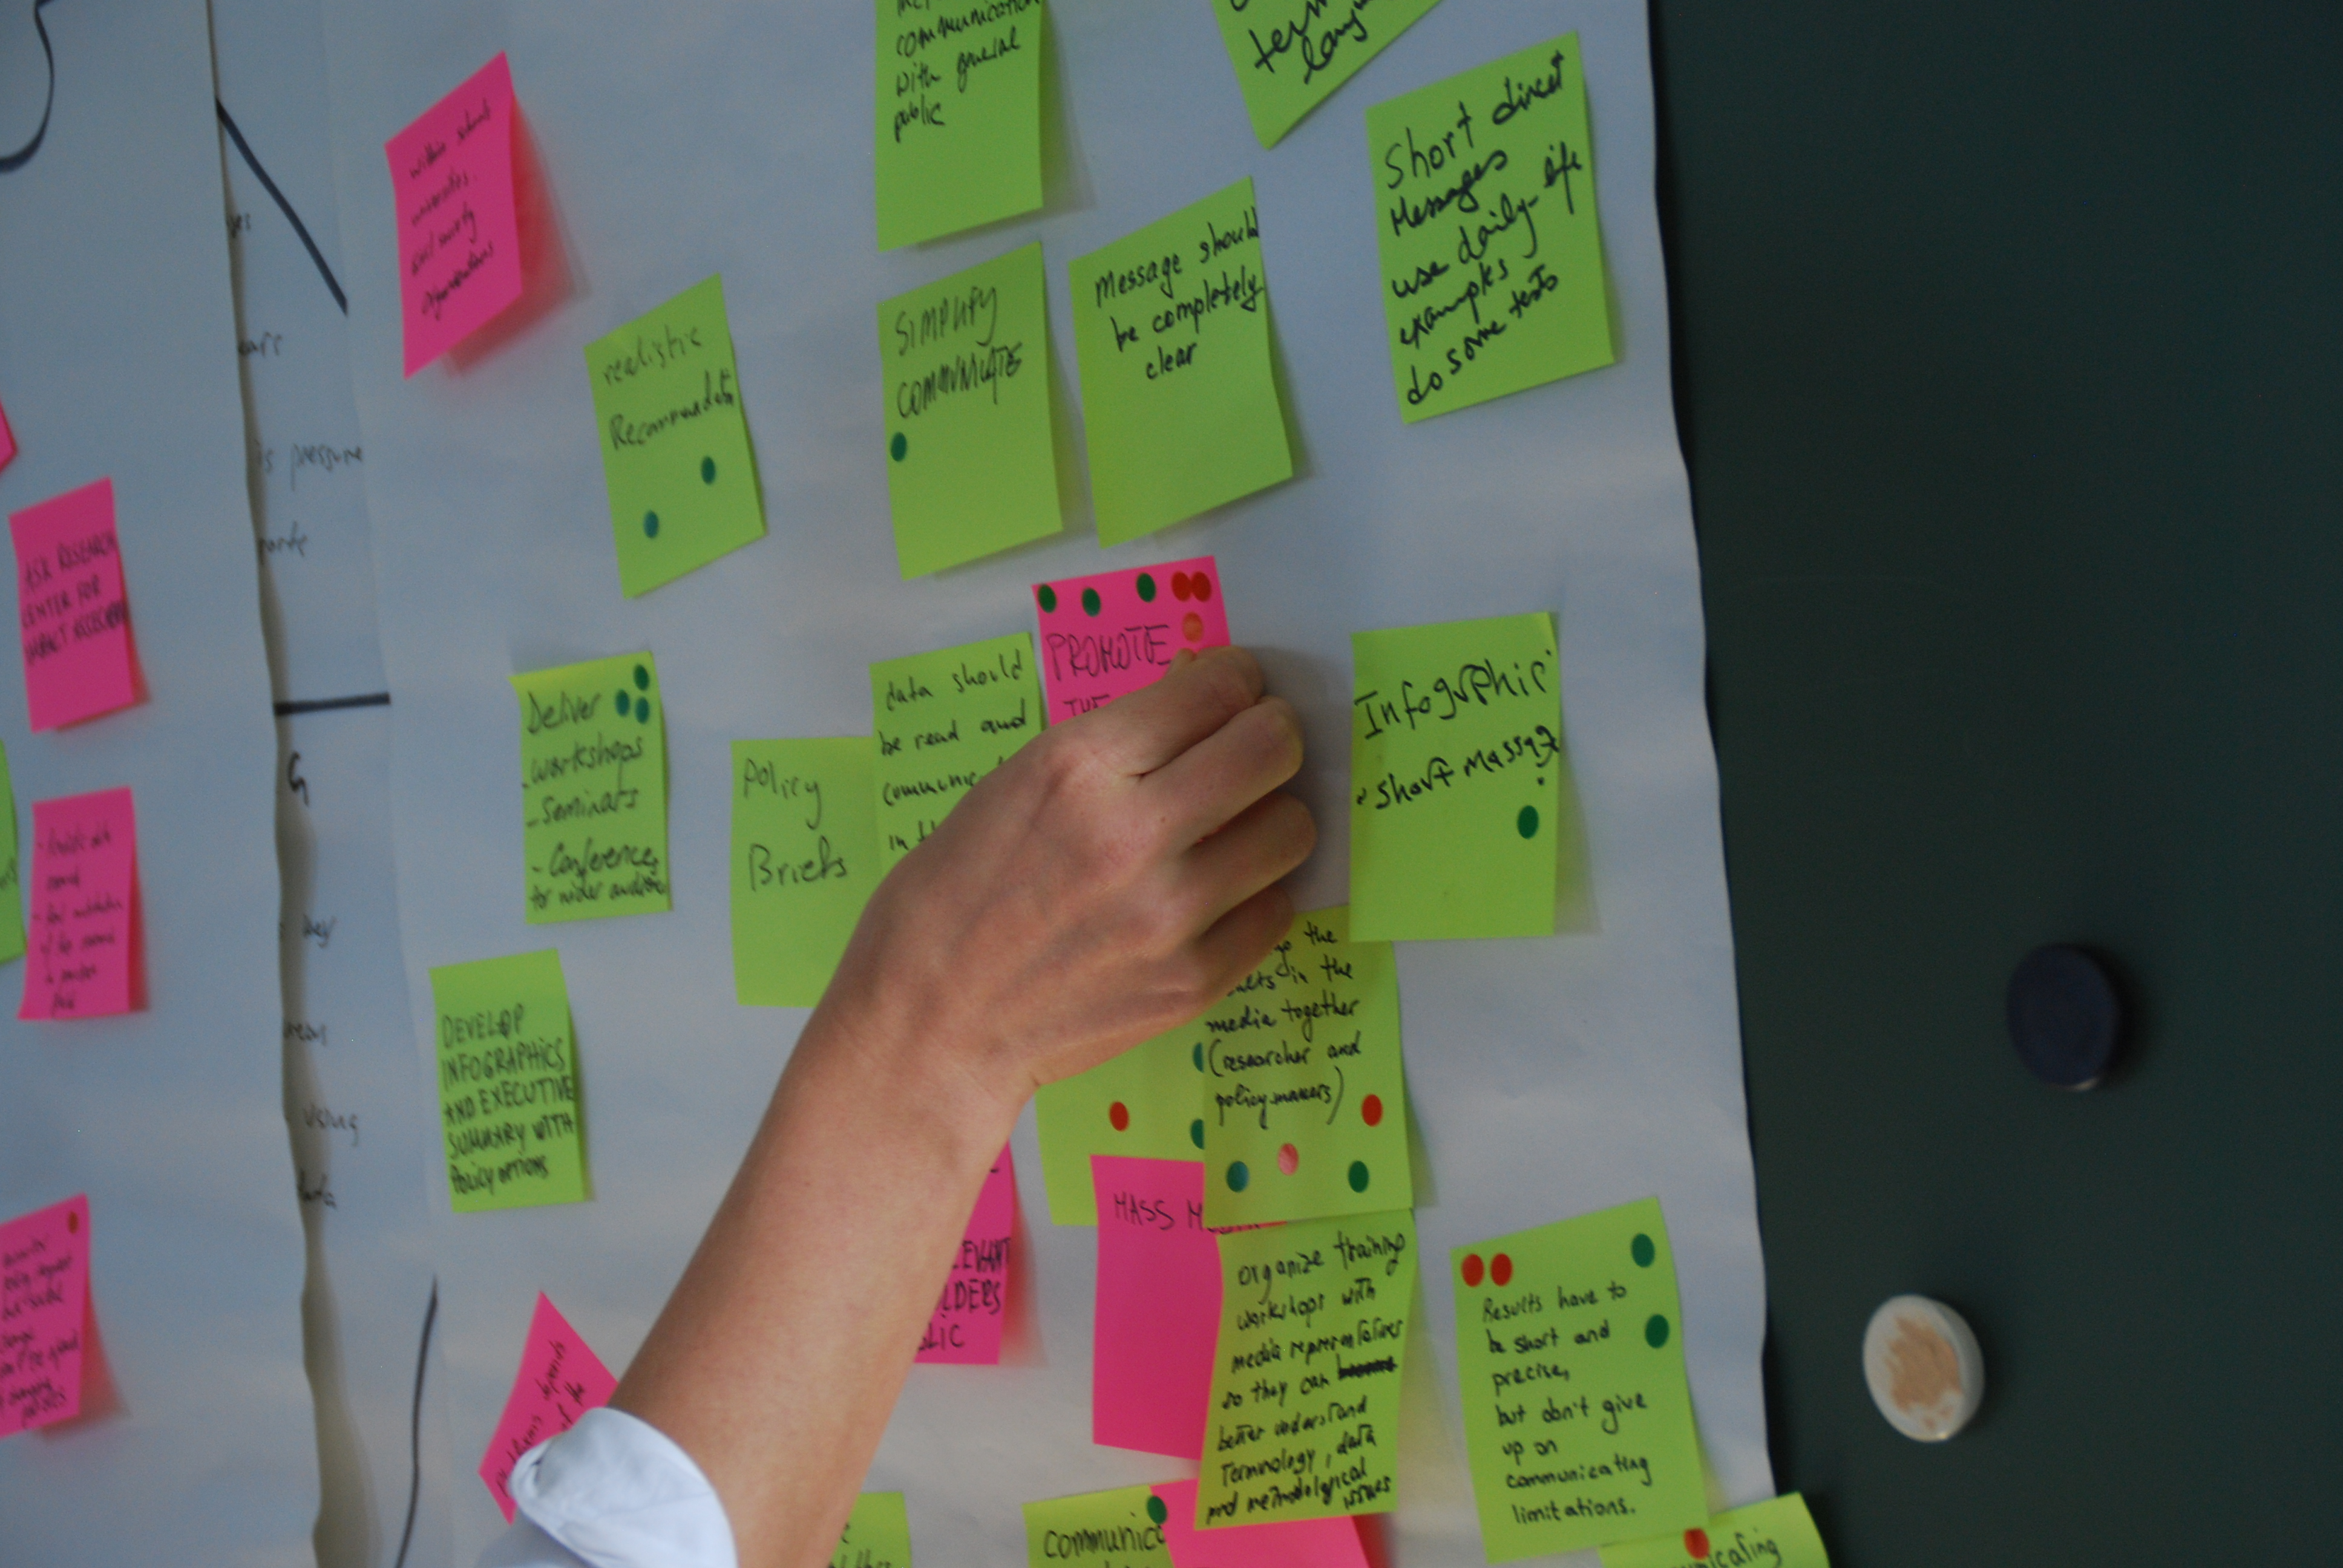 a person adding a sticky dot to a flip chart with post it notes